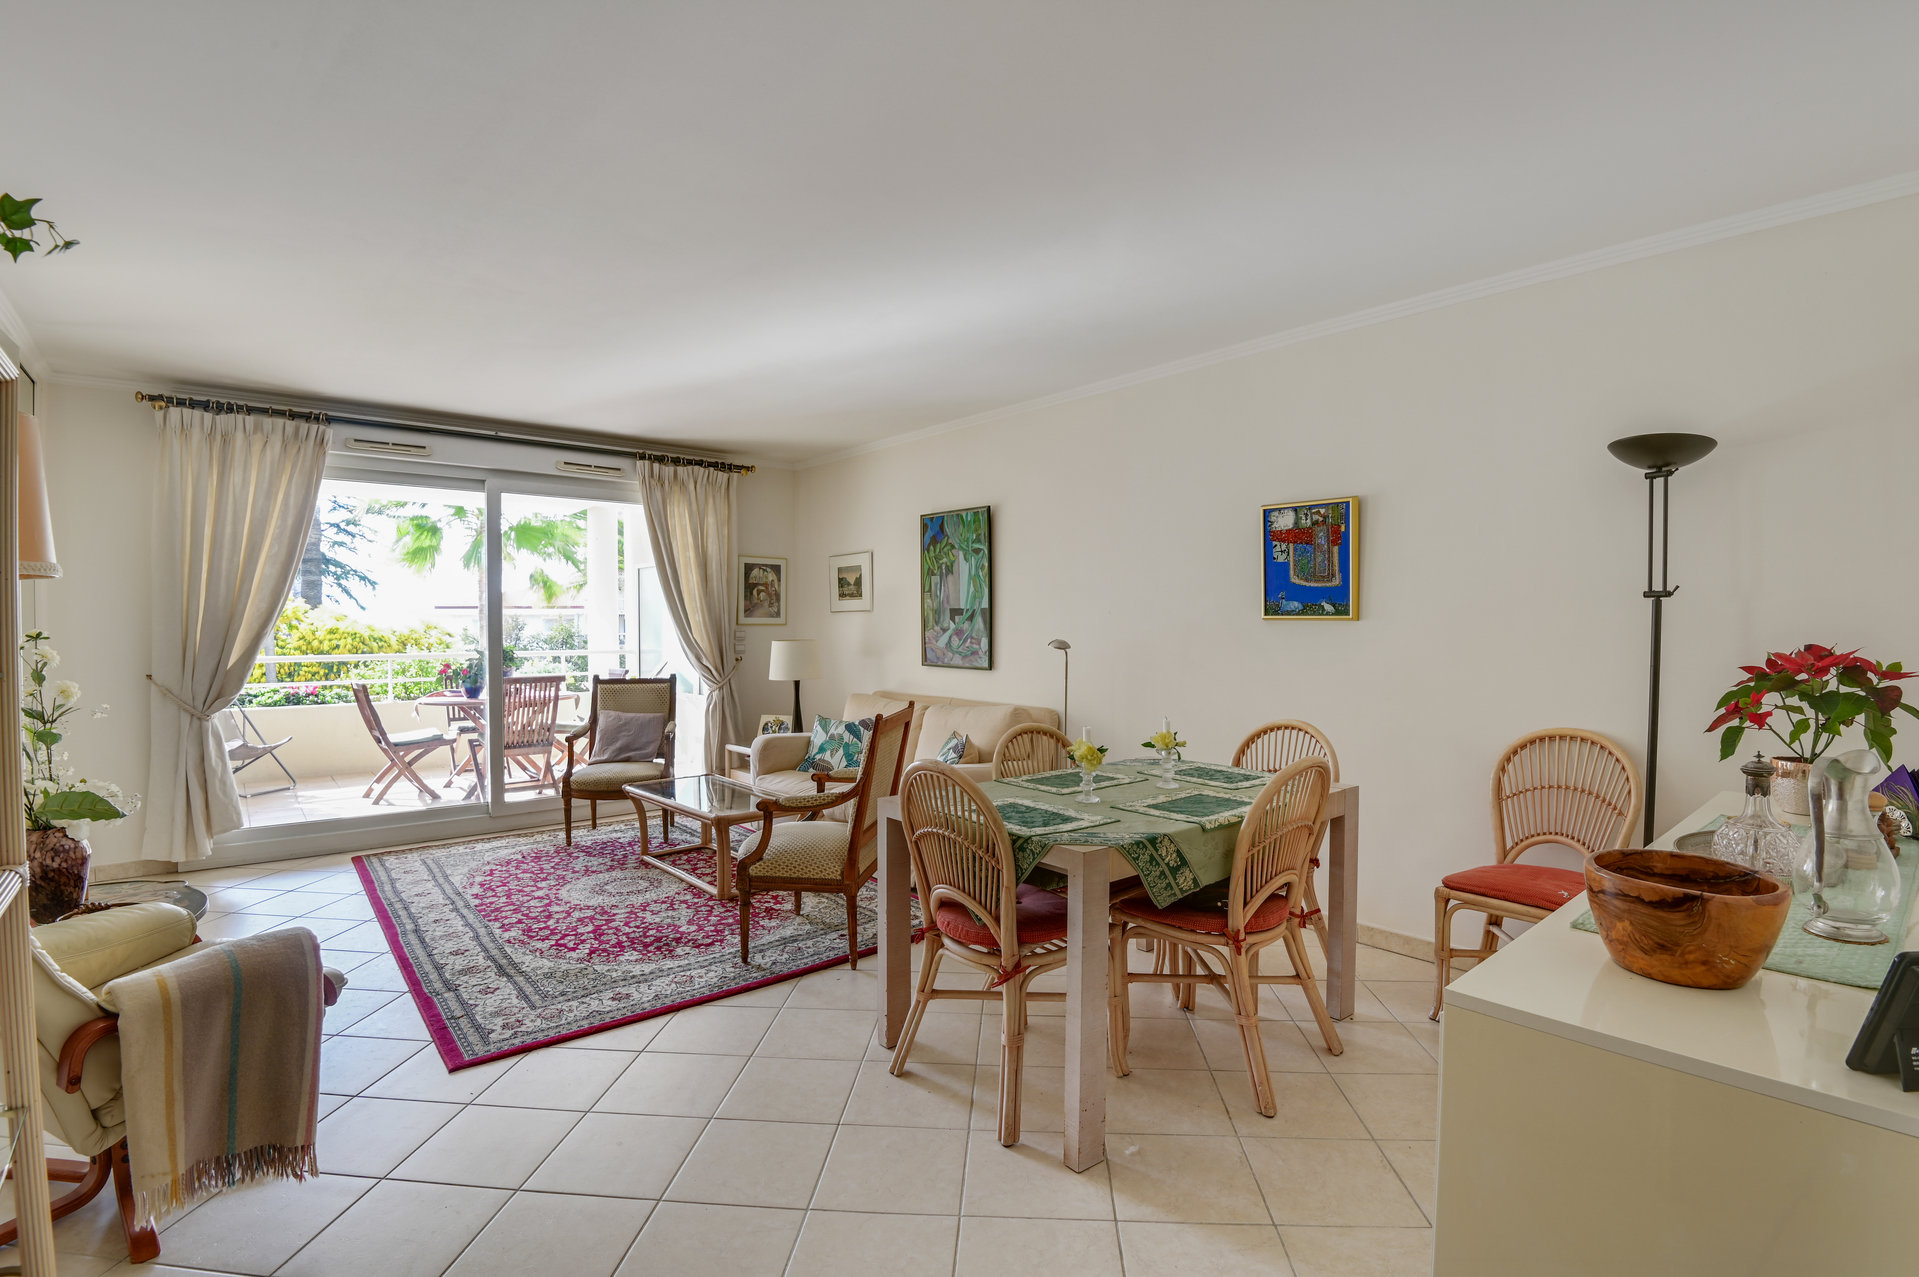 Antibes close to center and beaches - Lovely Apartment with 2 terraces and garage - Quiet